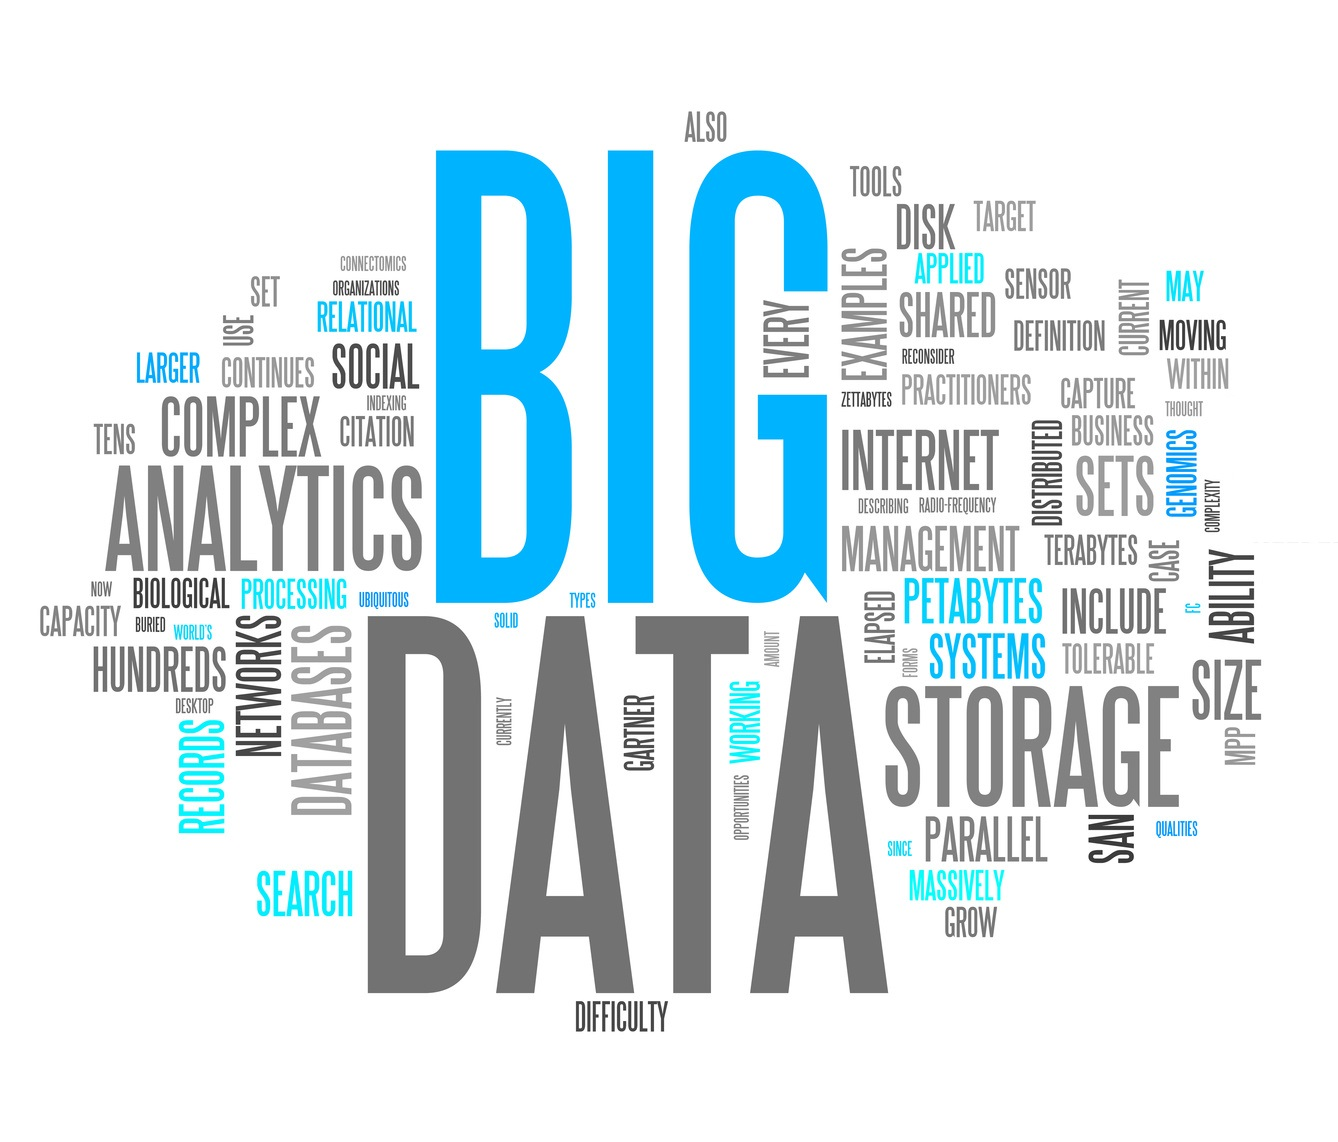 word cloud about Big data